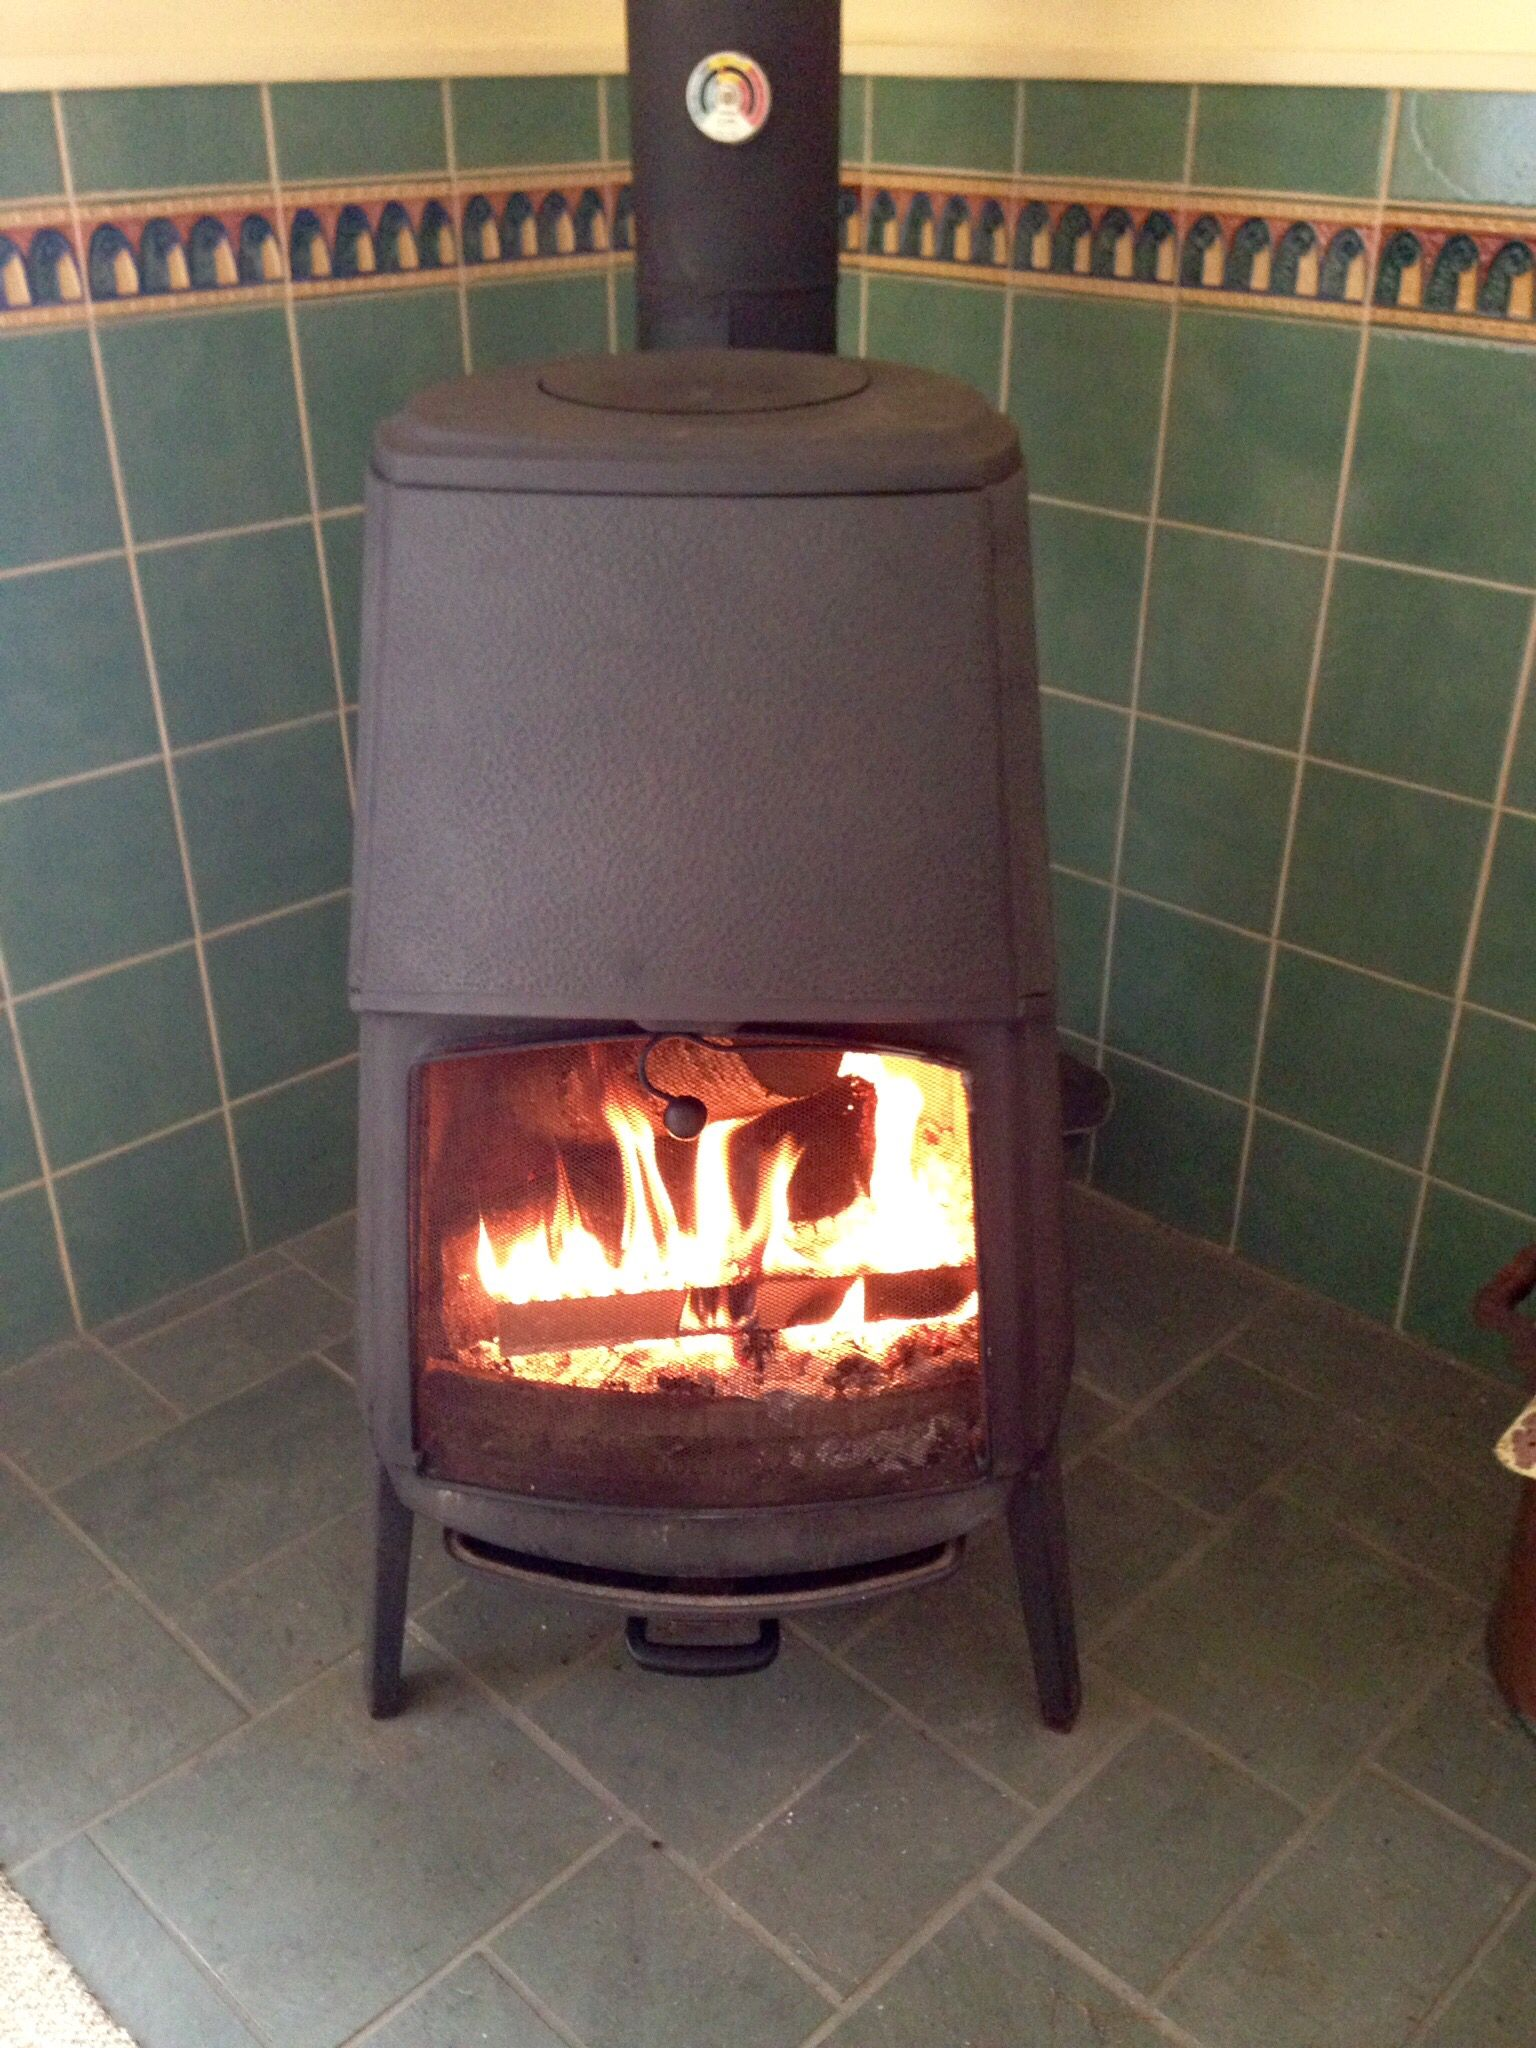 Jotul 4 Best Wood Stove Ever Heating For 40 Years Now